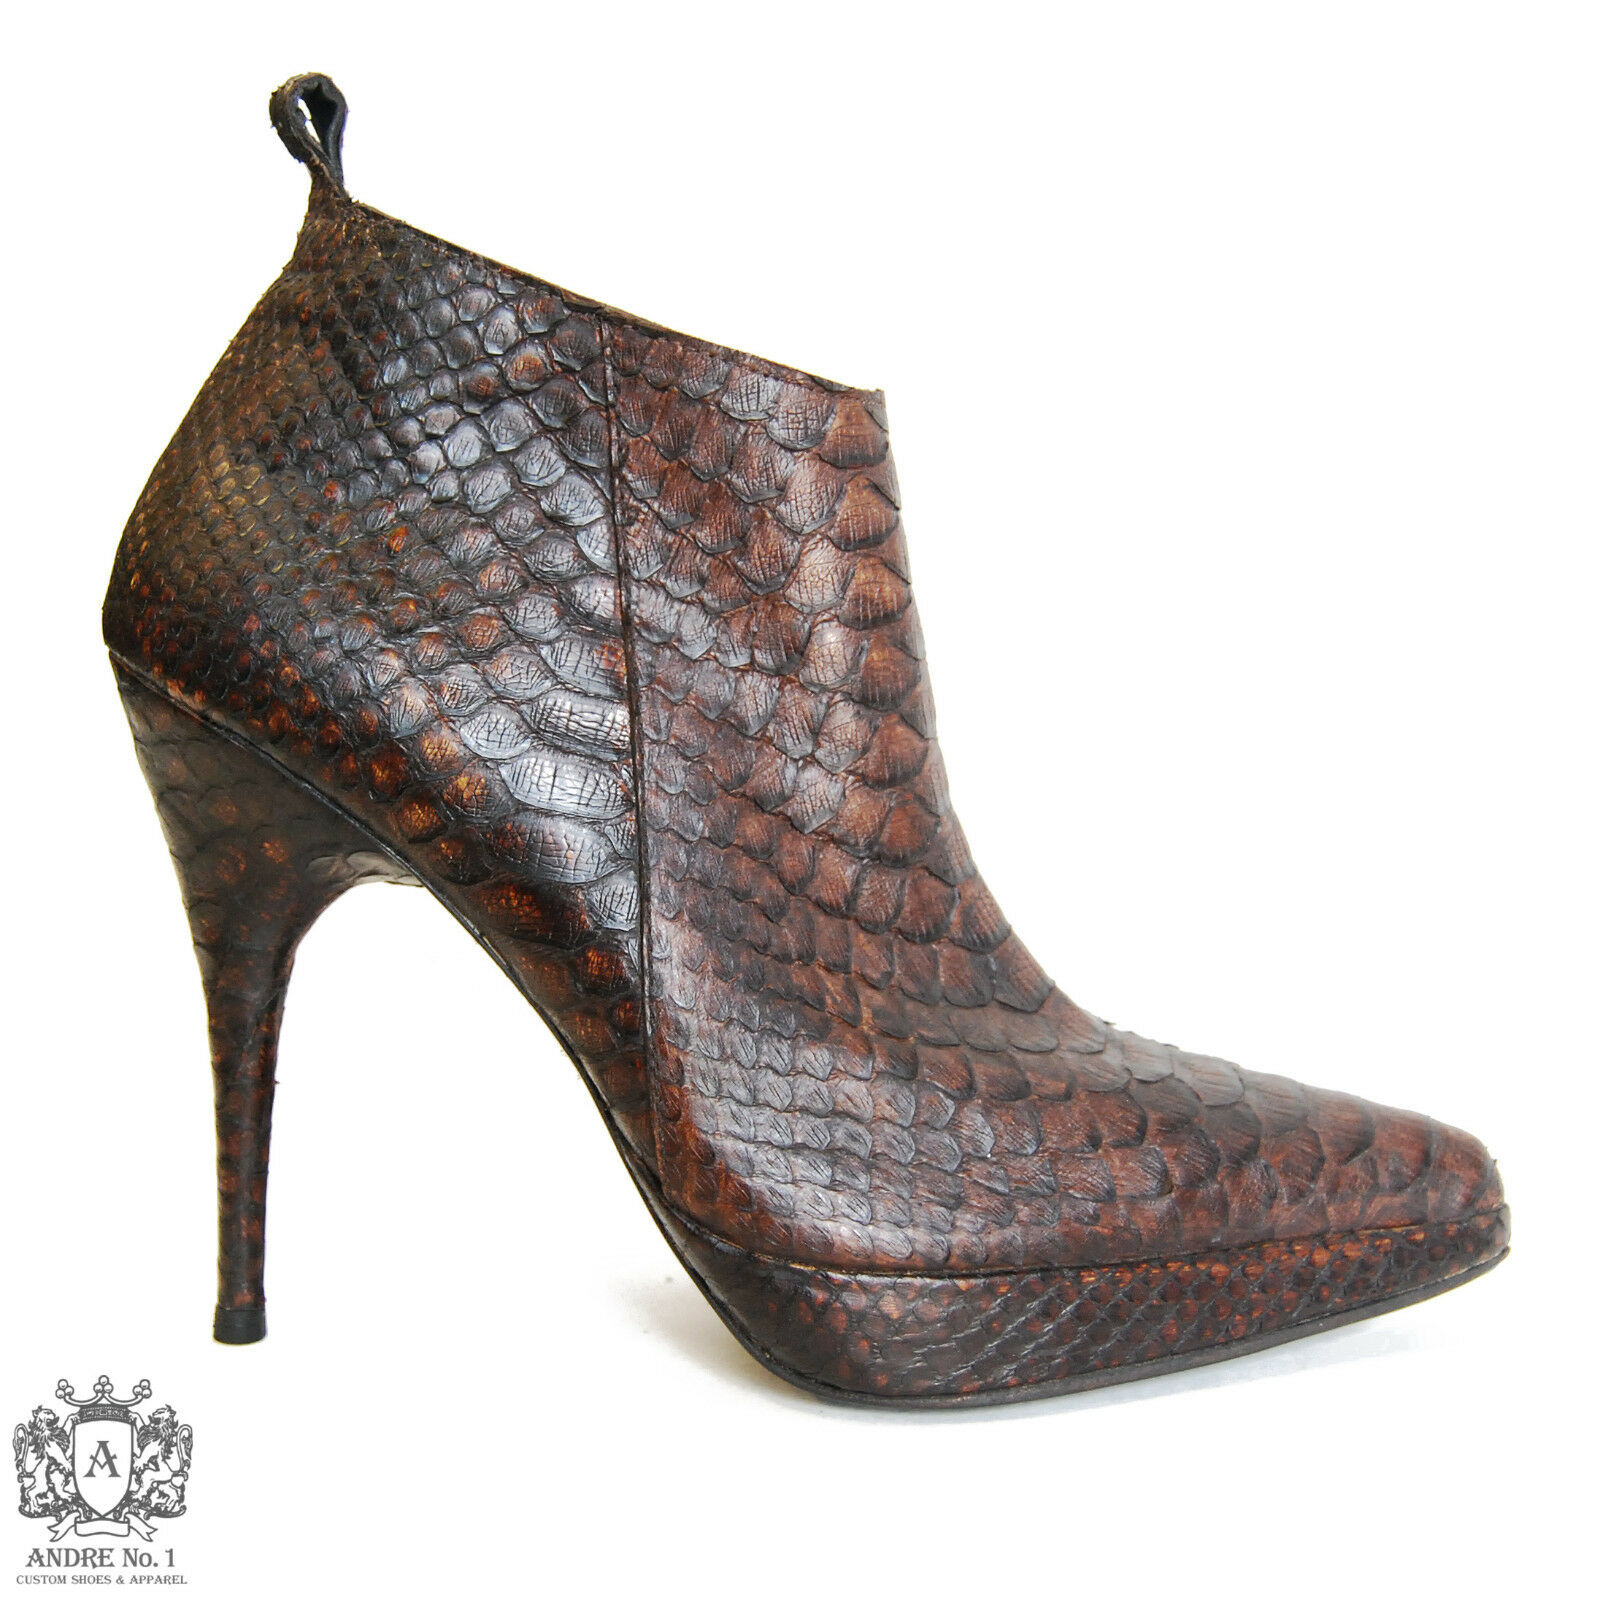 ANDRE No. 1 Brown Snakeskin Zip-Up Stiletto Boots, US 10, >>HANDMADE<<